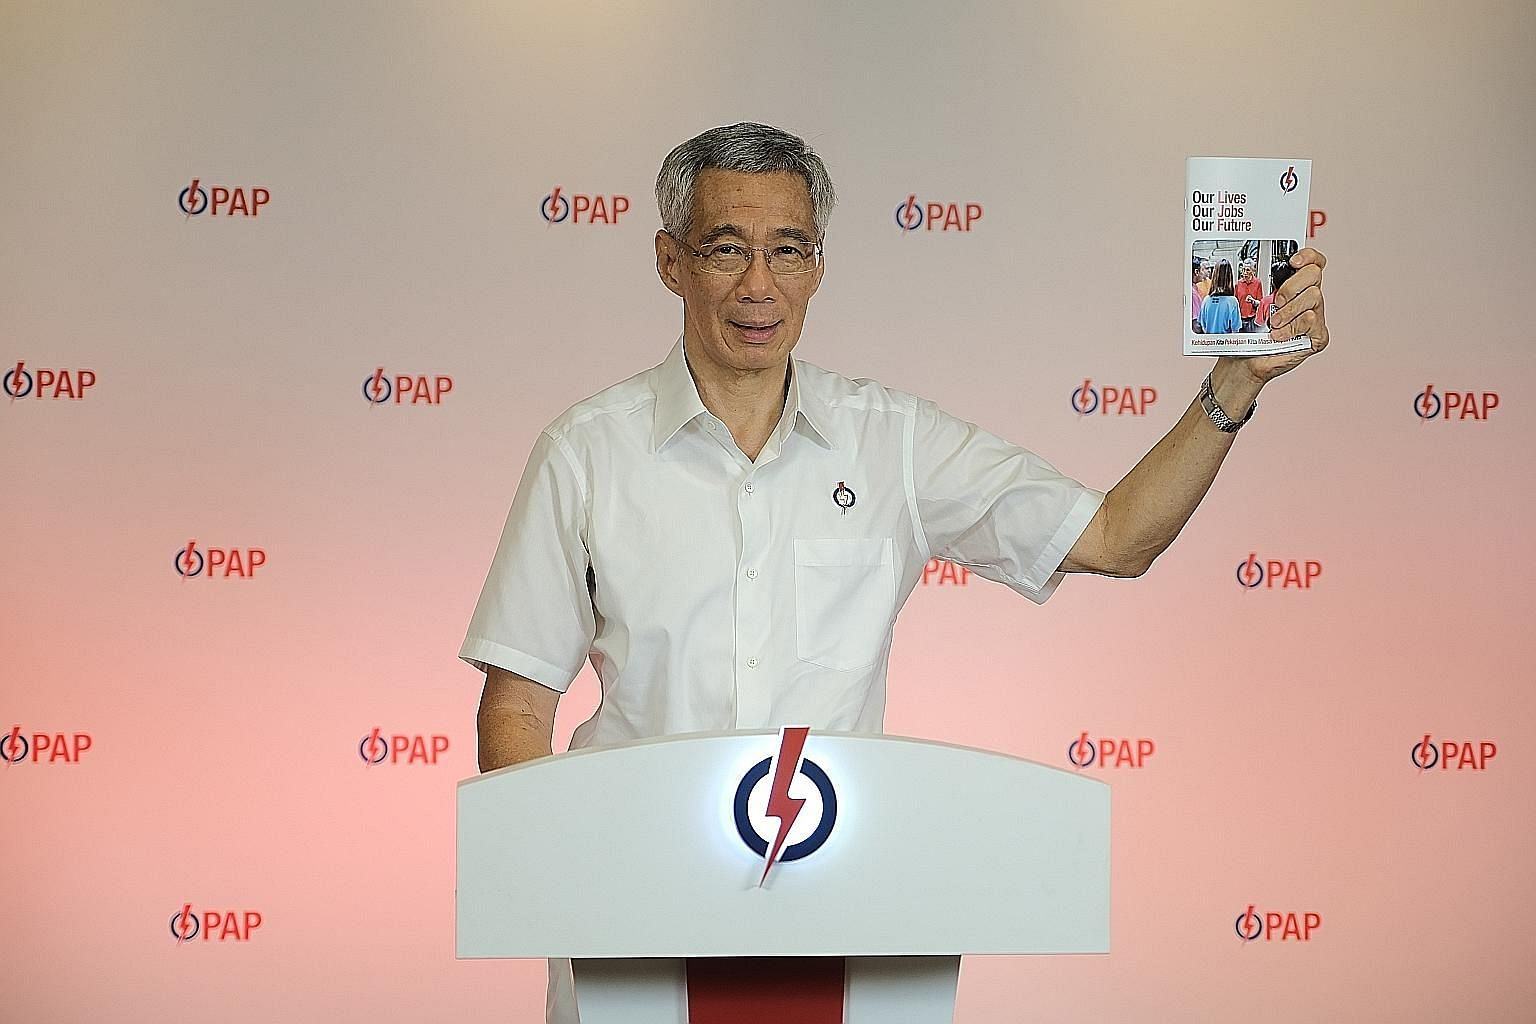 Prime Minister Lee Hsien Loong launching the People's Action Party's manifesto yesterday. During a live broadcast on Facebook and YouTube, he highlighted the achievements of a few of the PAP's new candidates, several of whom have founded social enter